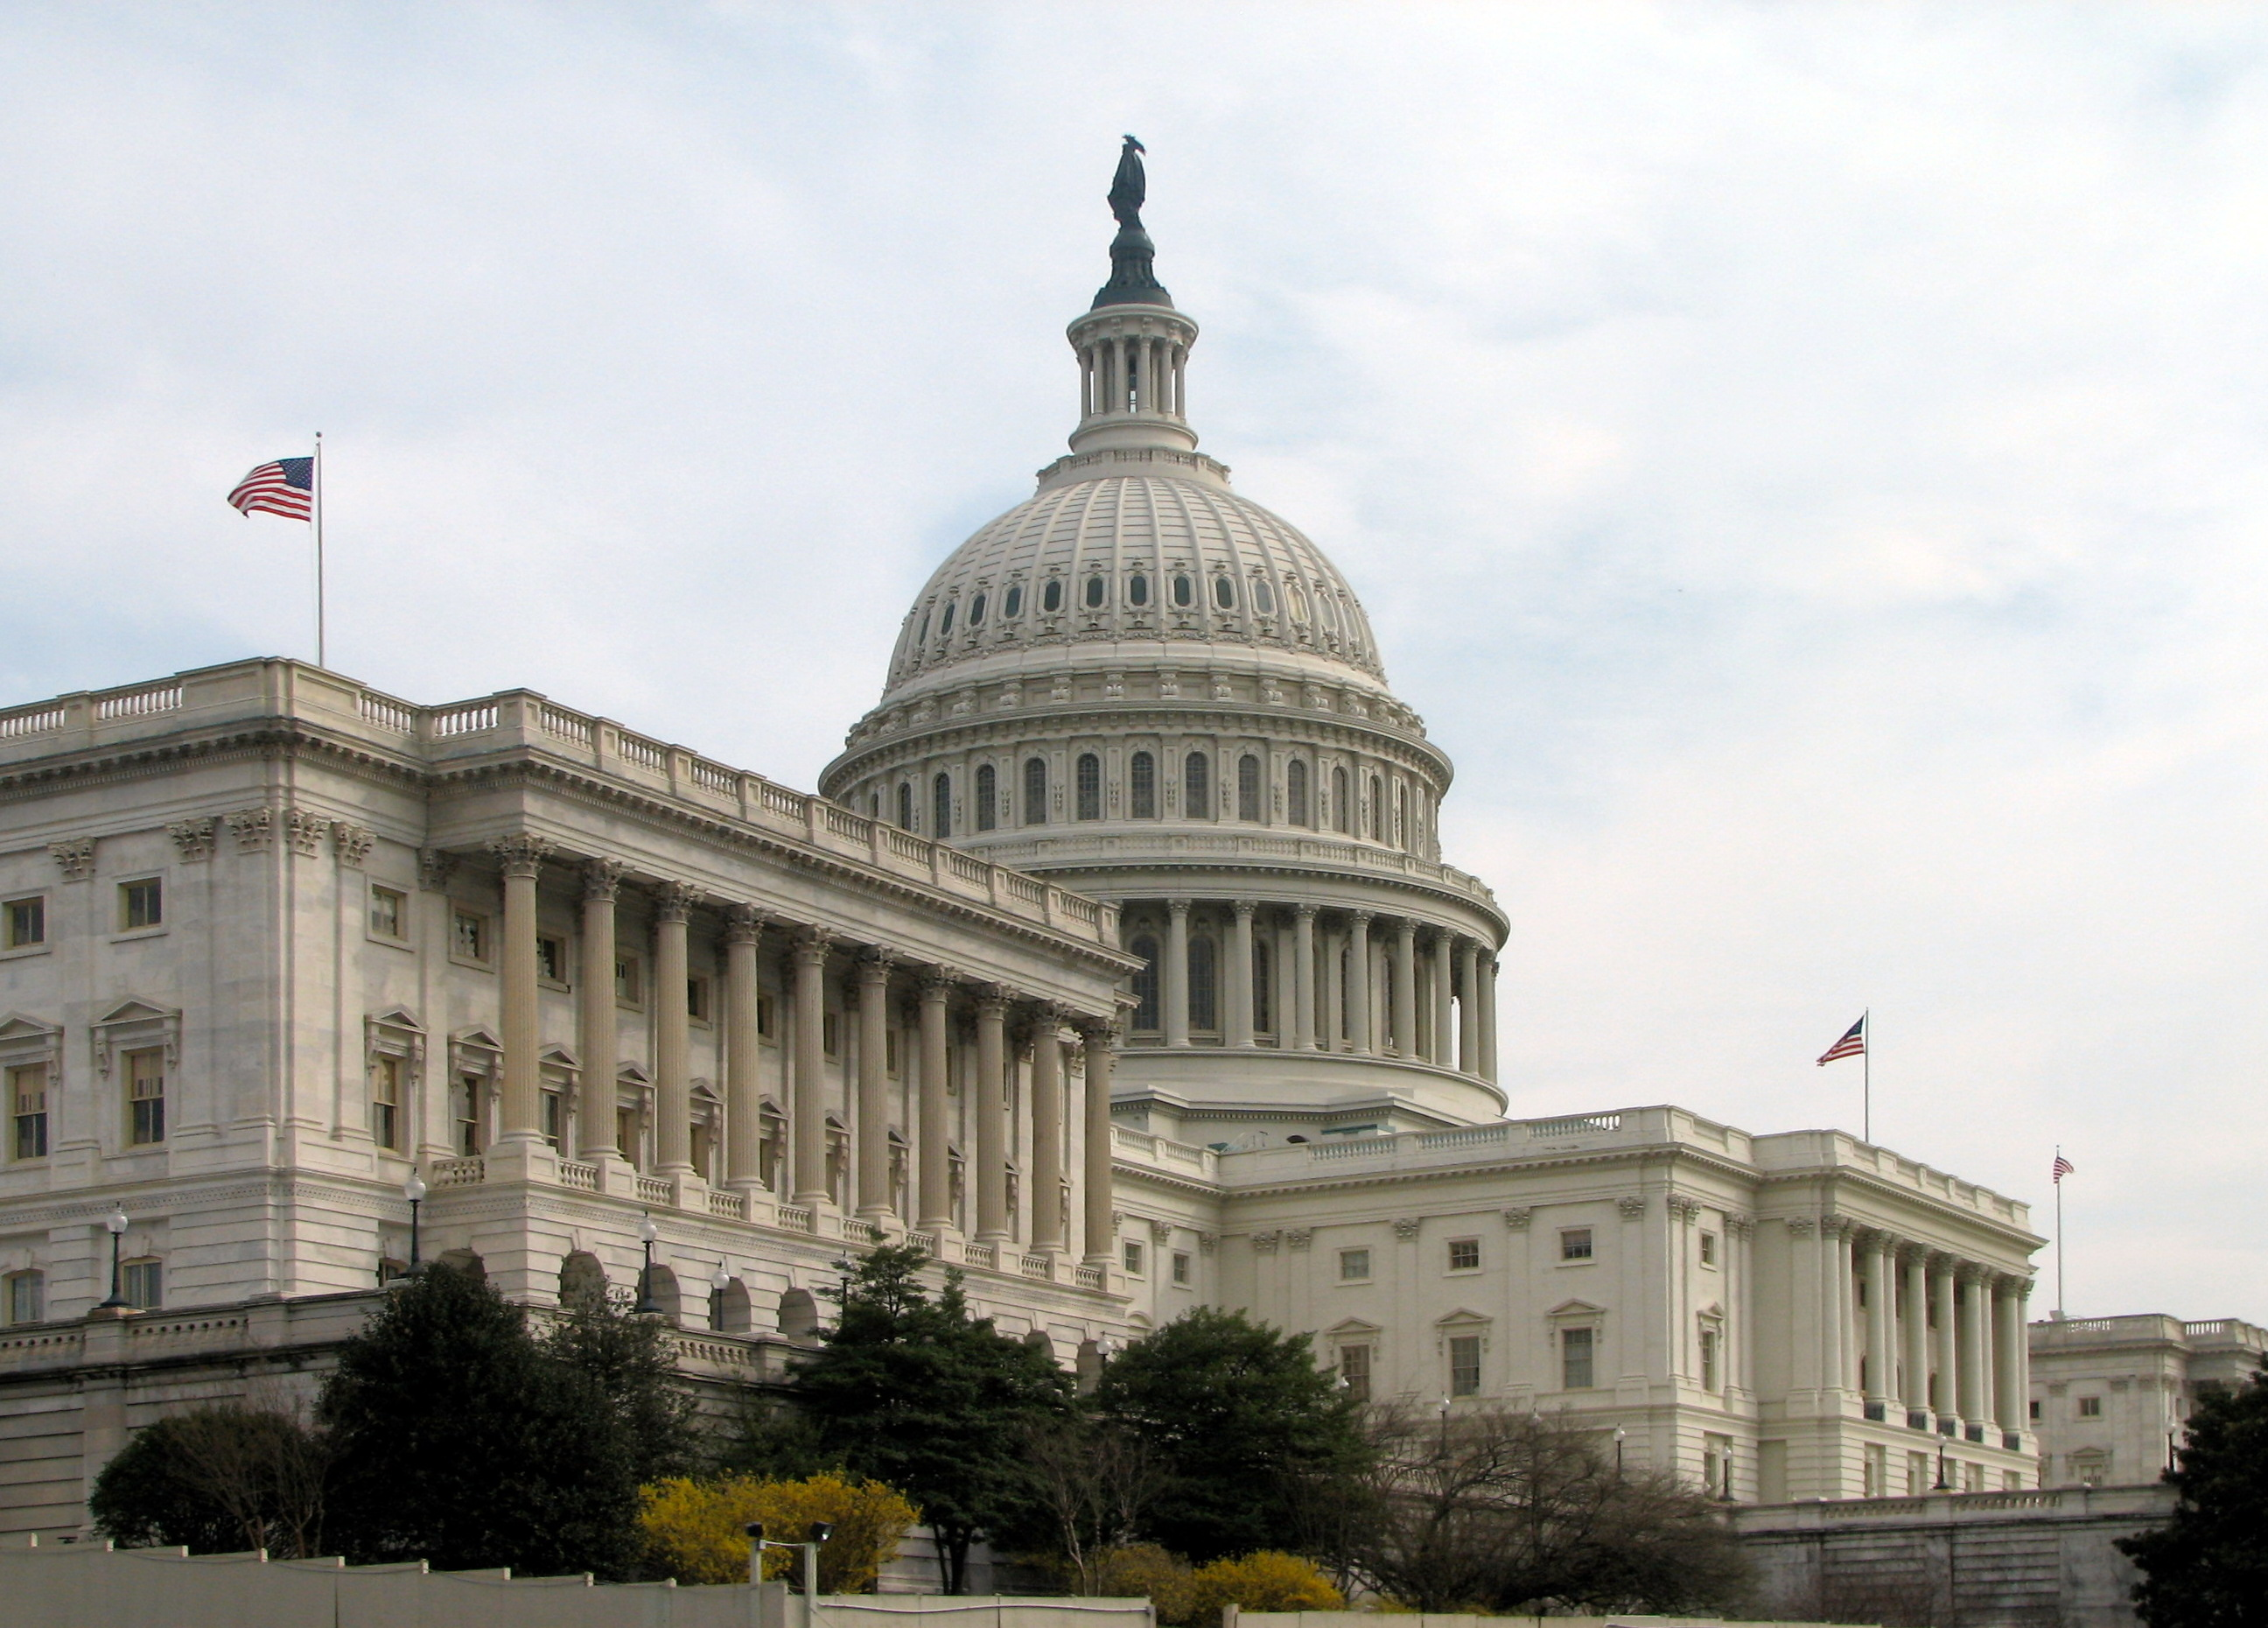 The Senate side of the United States Capitol in Washington, D.C.